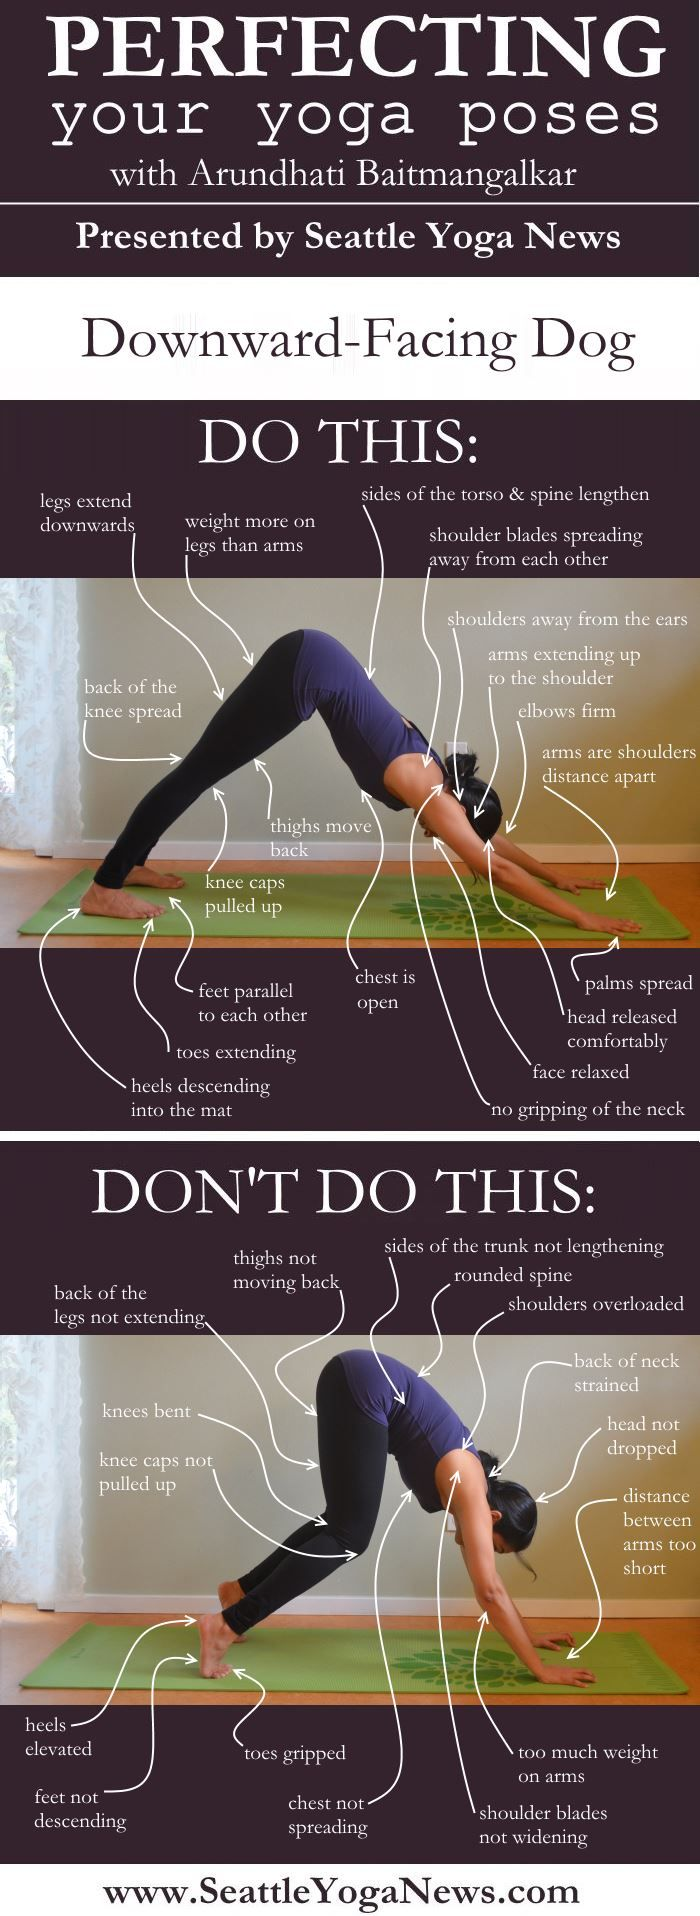 Struggling with Downward-Facing Dog? Take a look at this Downward-Facing Dog guide that visually explains what to do and what not to do in this yoga pose.